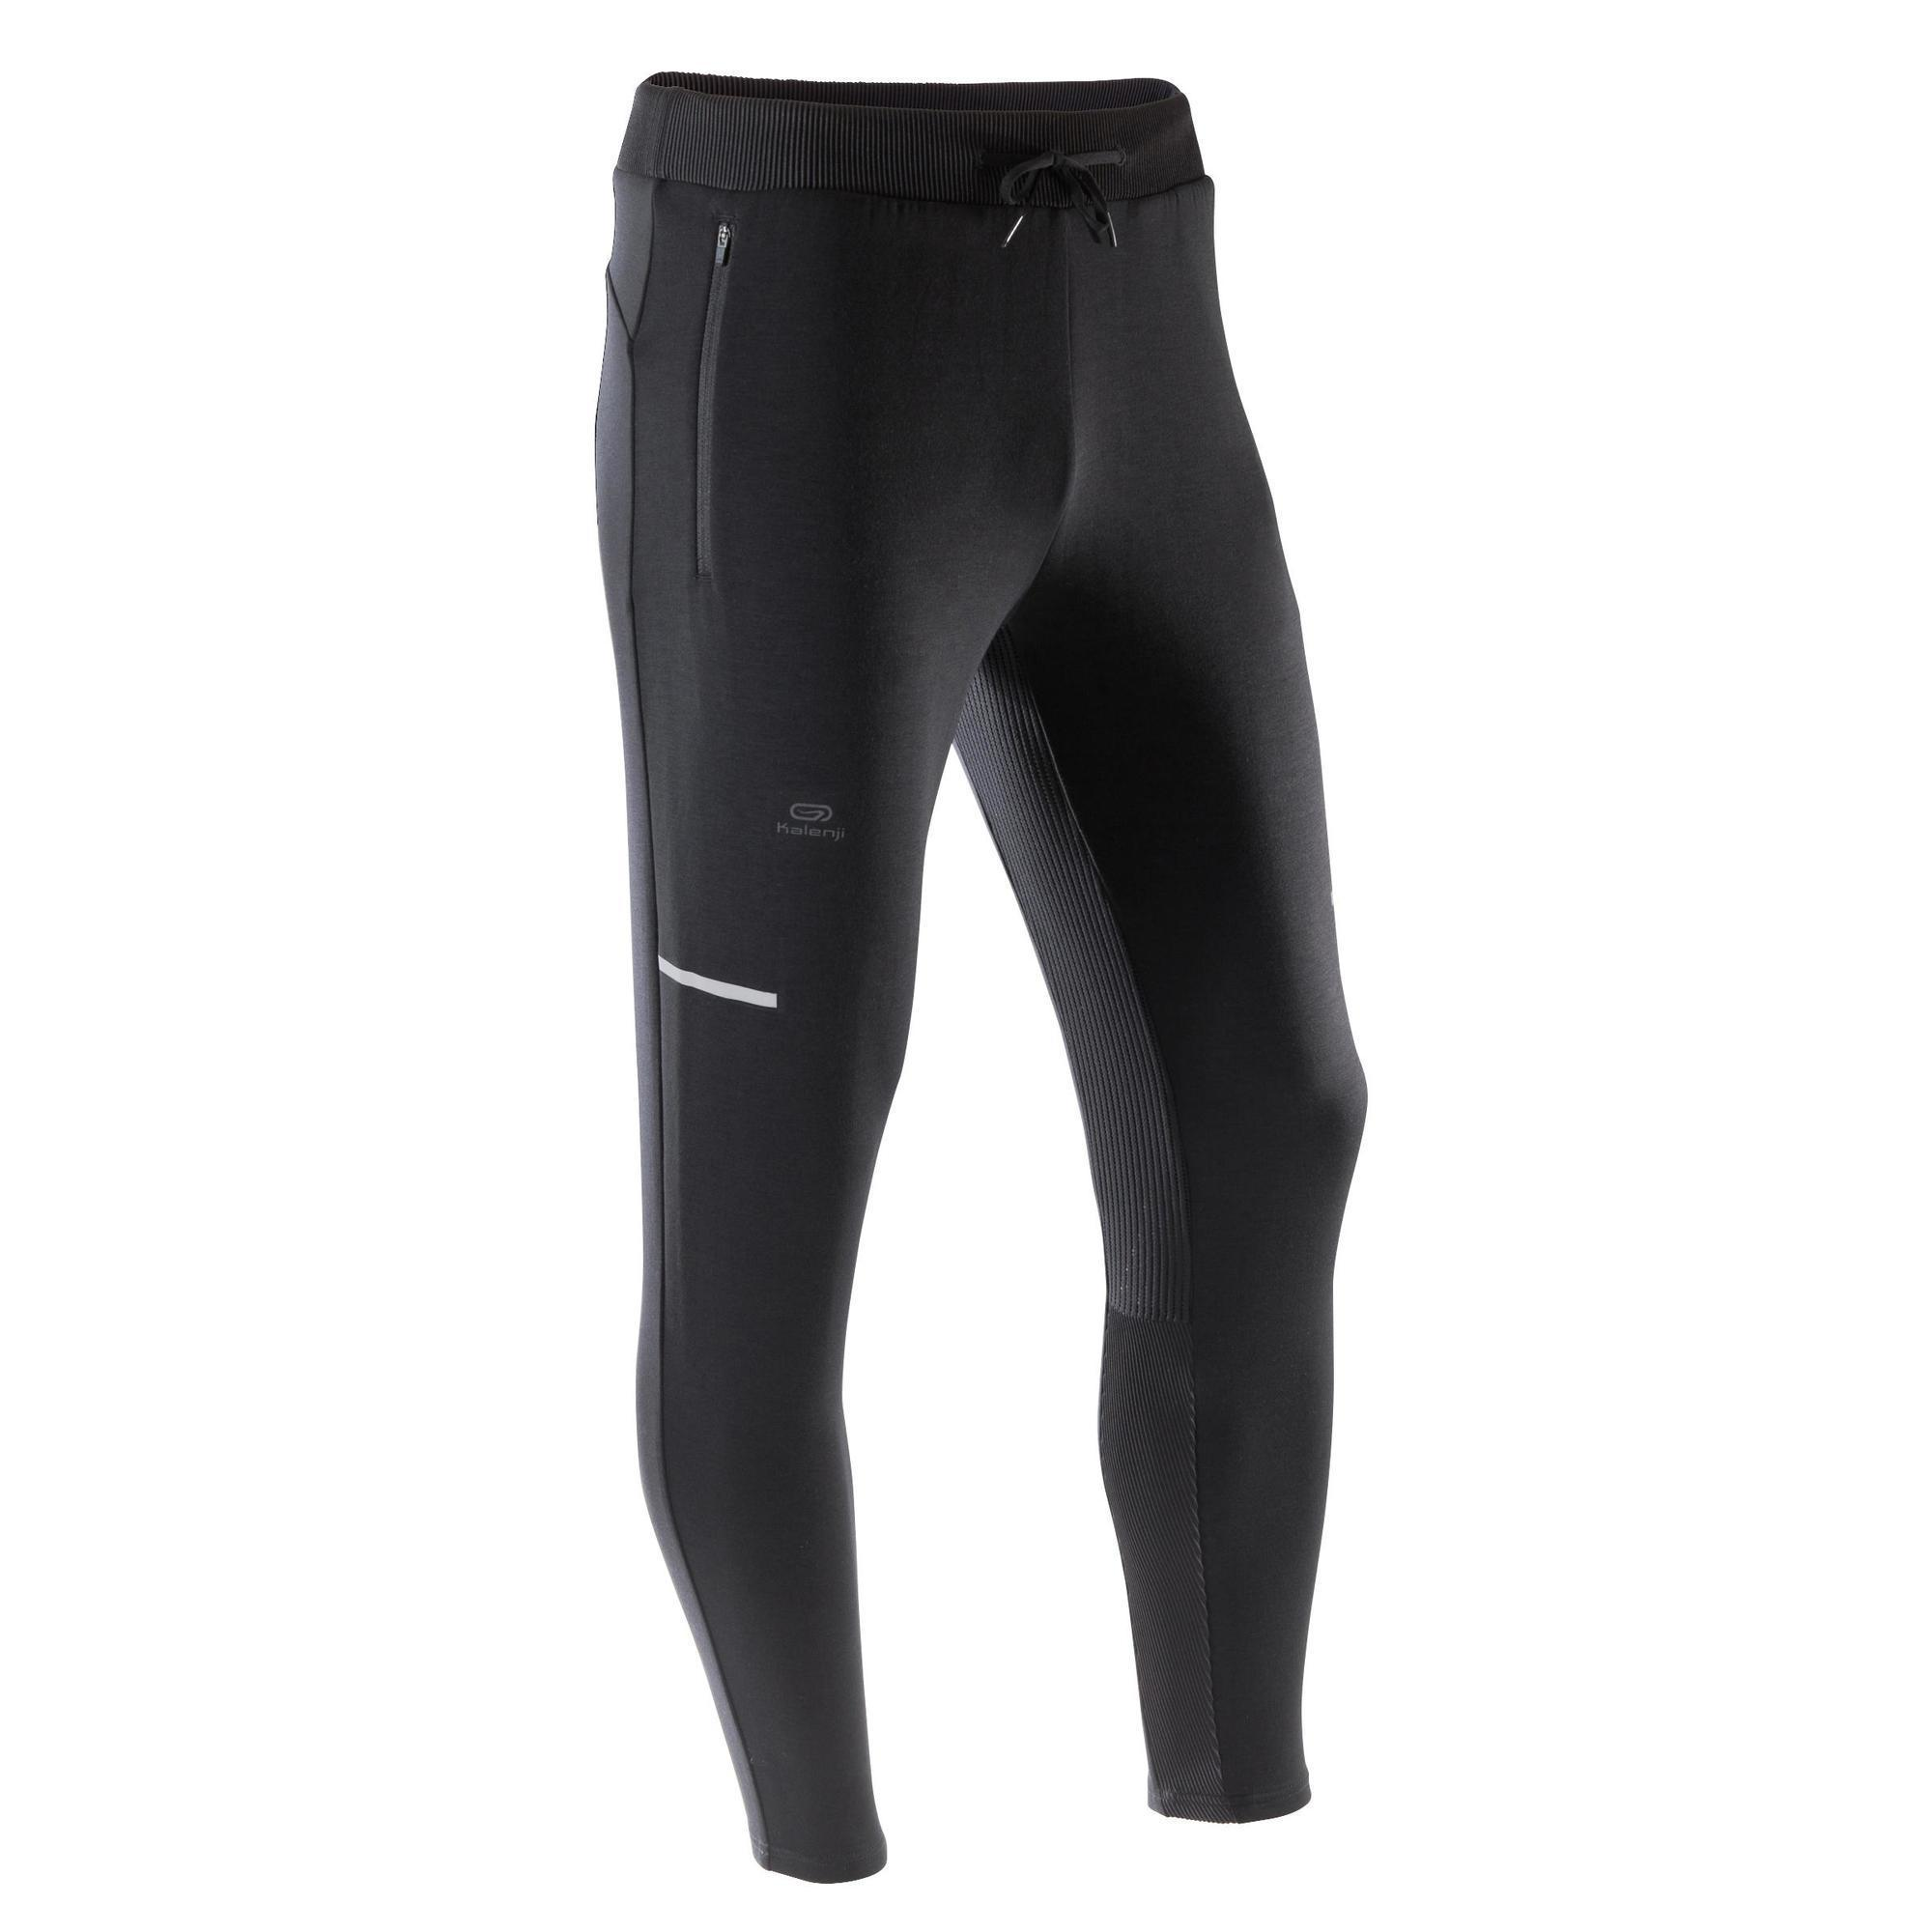 e0ab9fa2f23bb8 Decathlon | Herren Kalenji Laufhose lang Tights Run Dry Herren ...